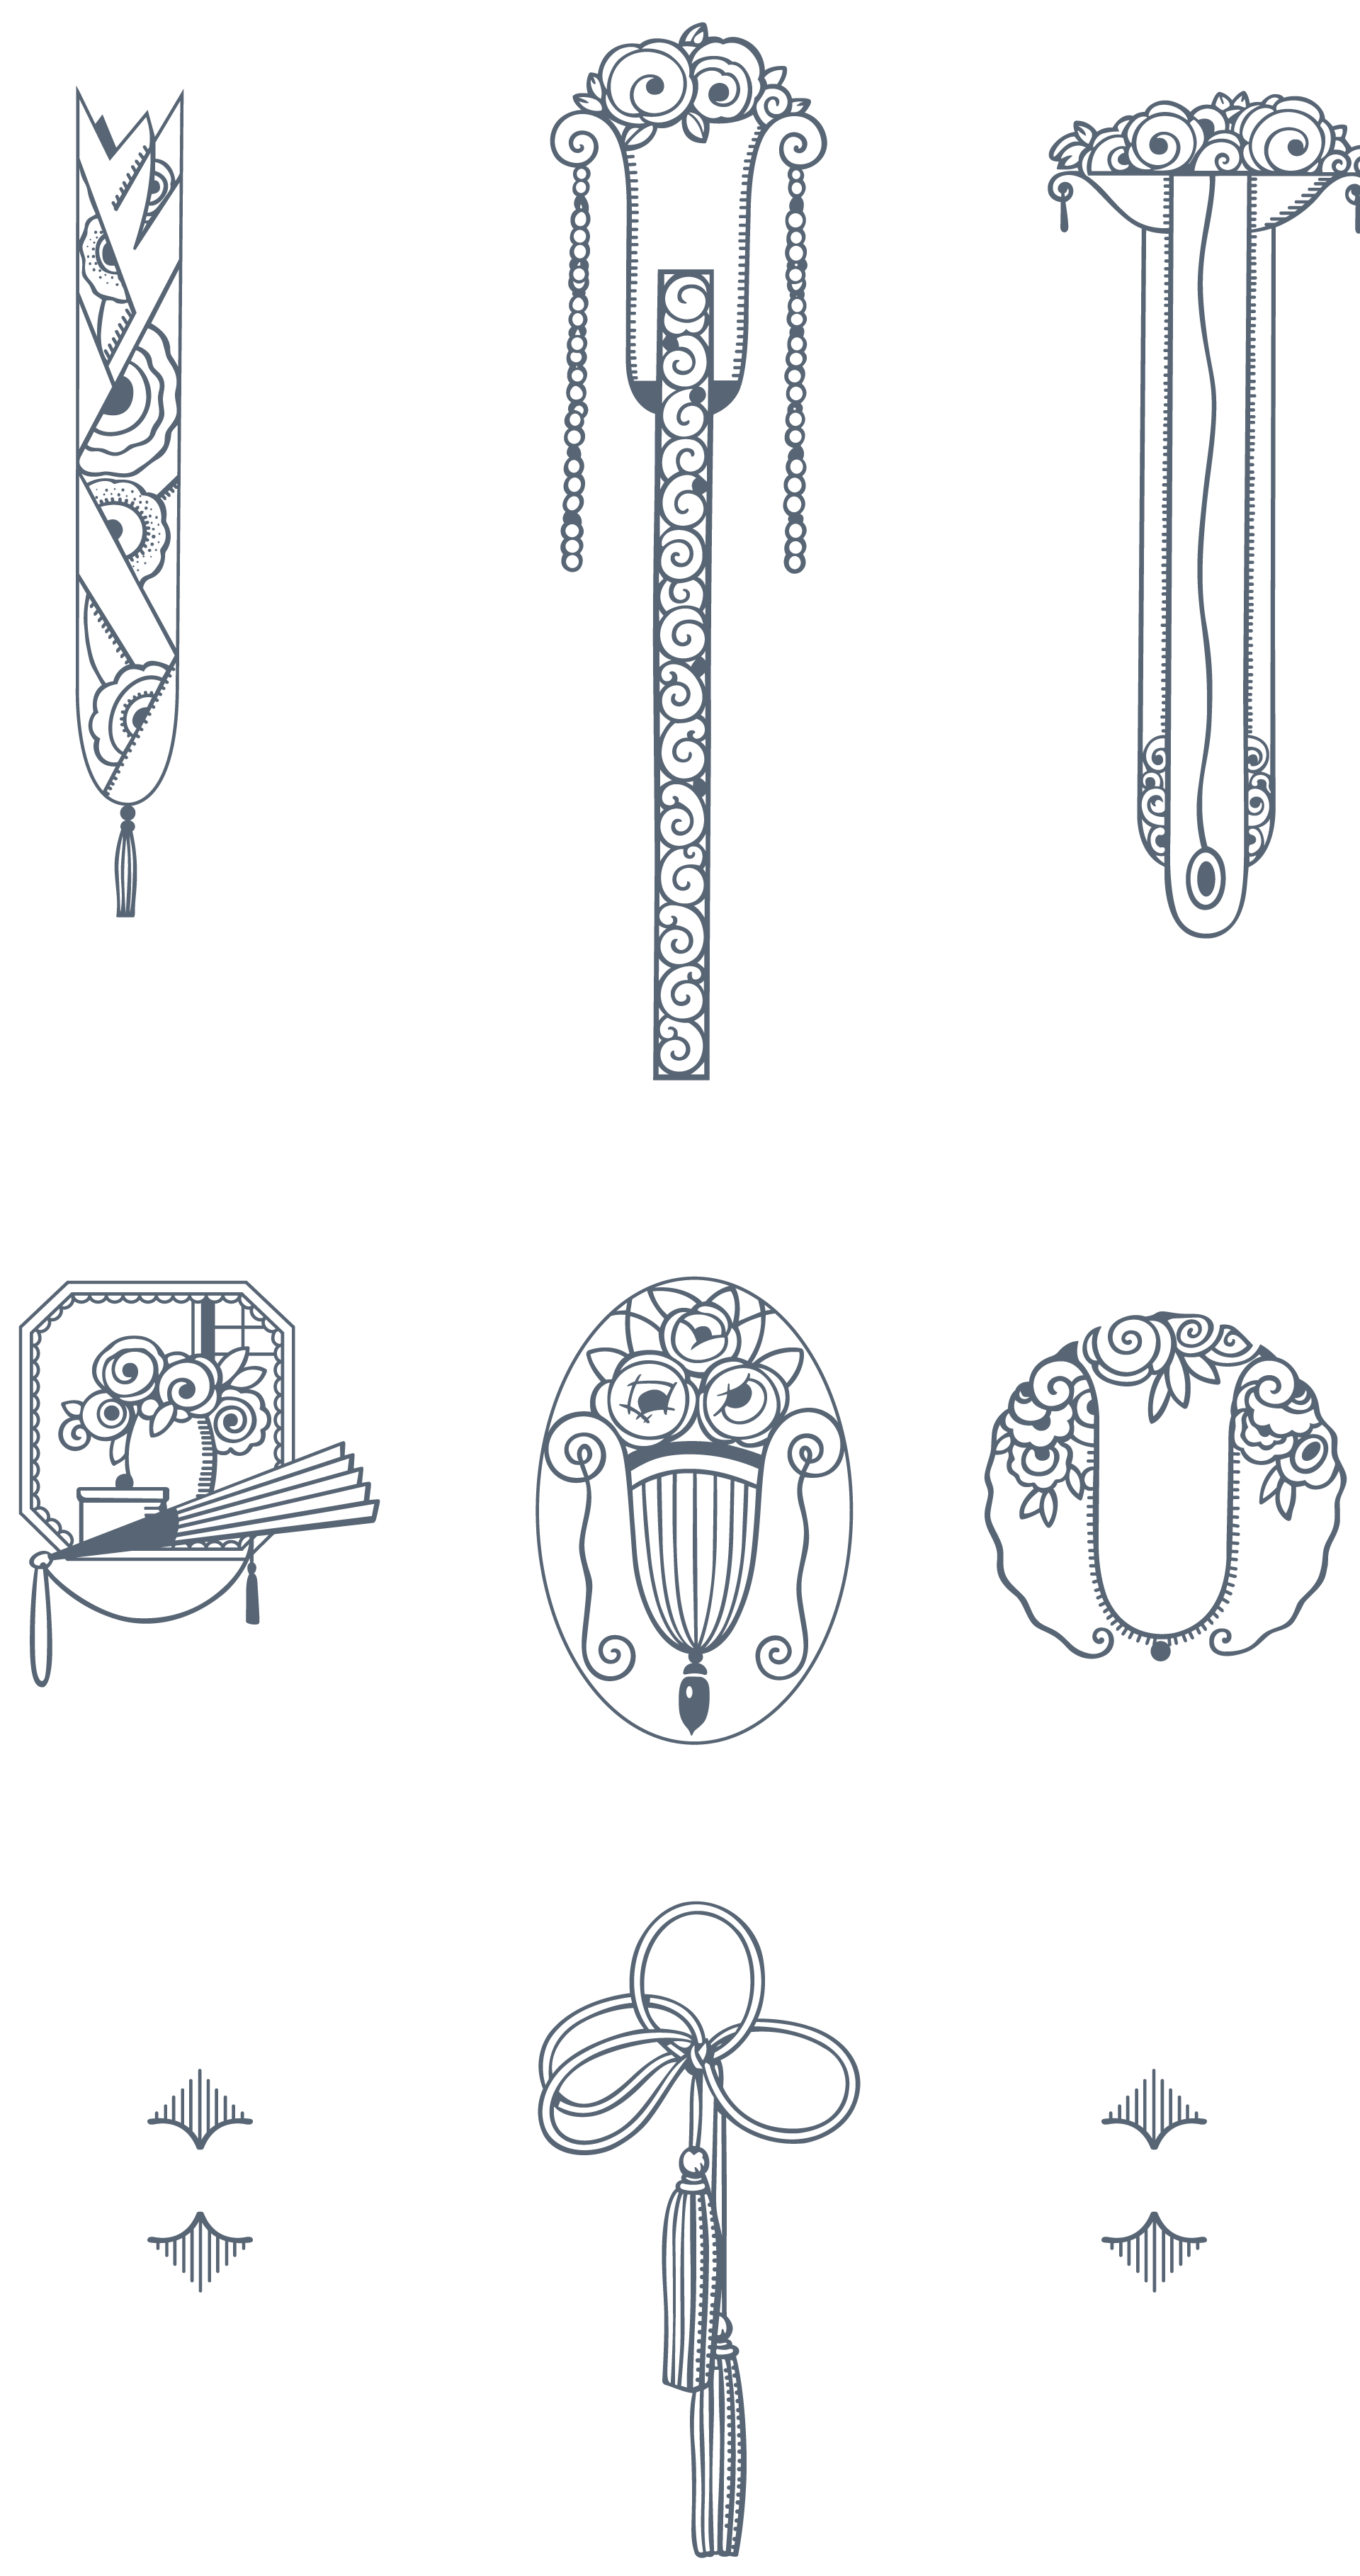 Art deco ornaments - Download 170 Stylized Art Deco Illustrations And Ornaments Vectorized From Genuine Sources Printed In The 1920s They Re The Bee S Knees